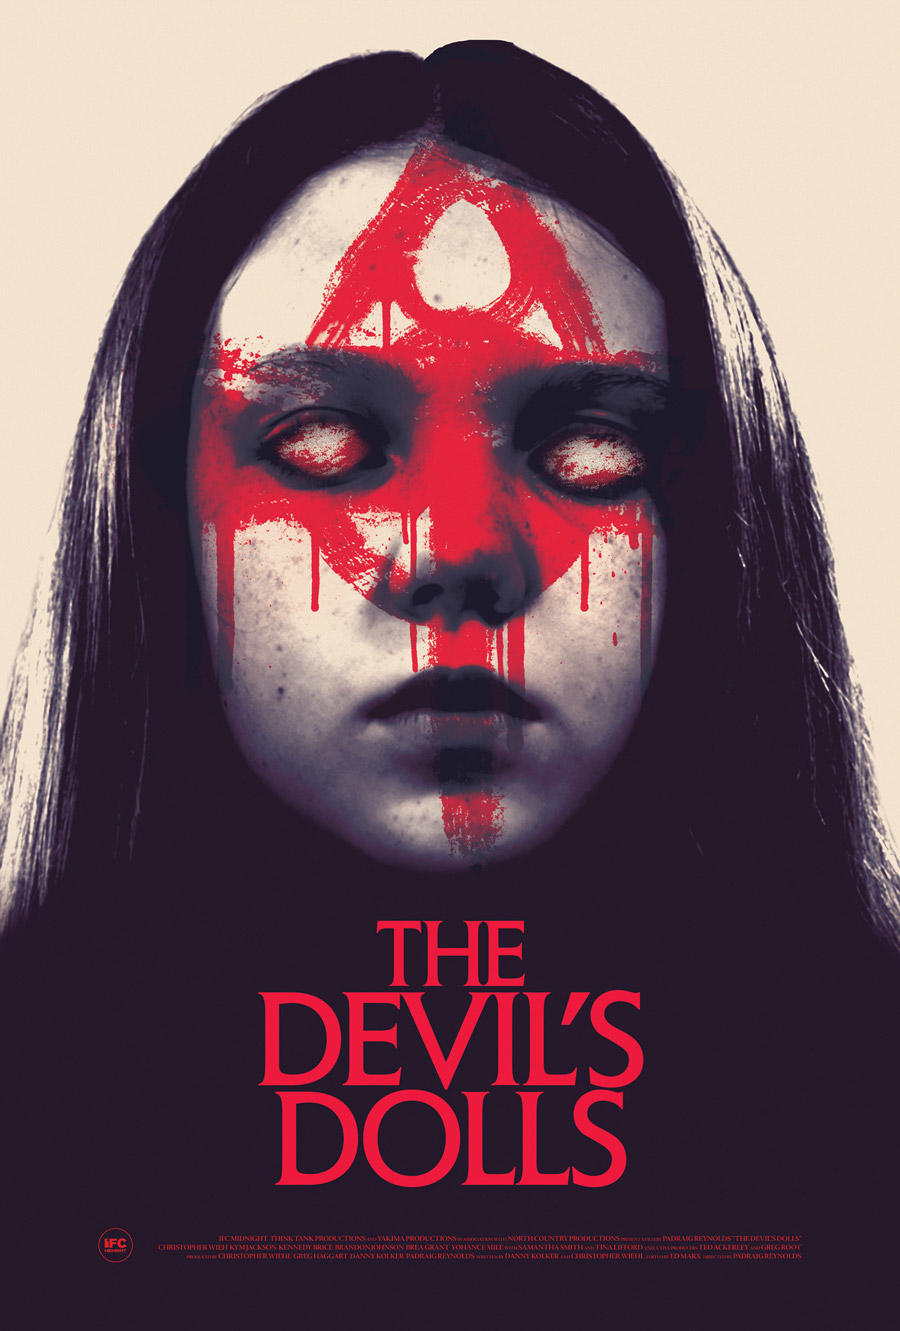 The Devil's Dolls poster art